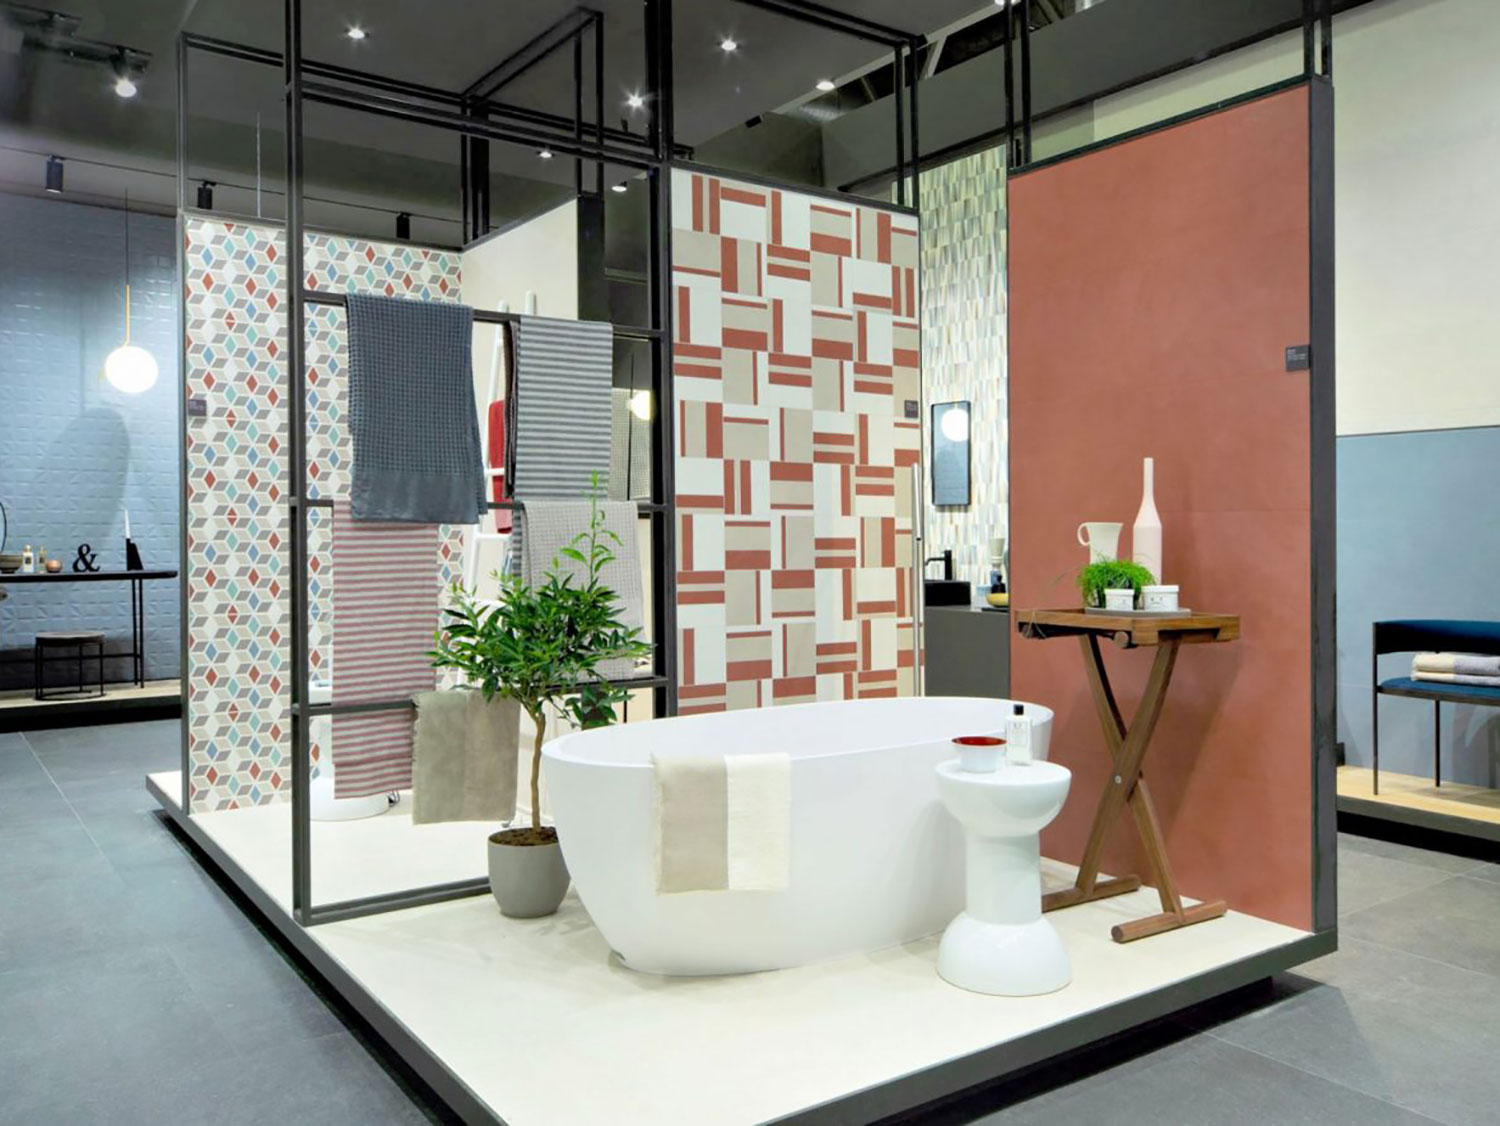 PullCast's Guide To Cersaie Bologna 2019